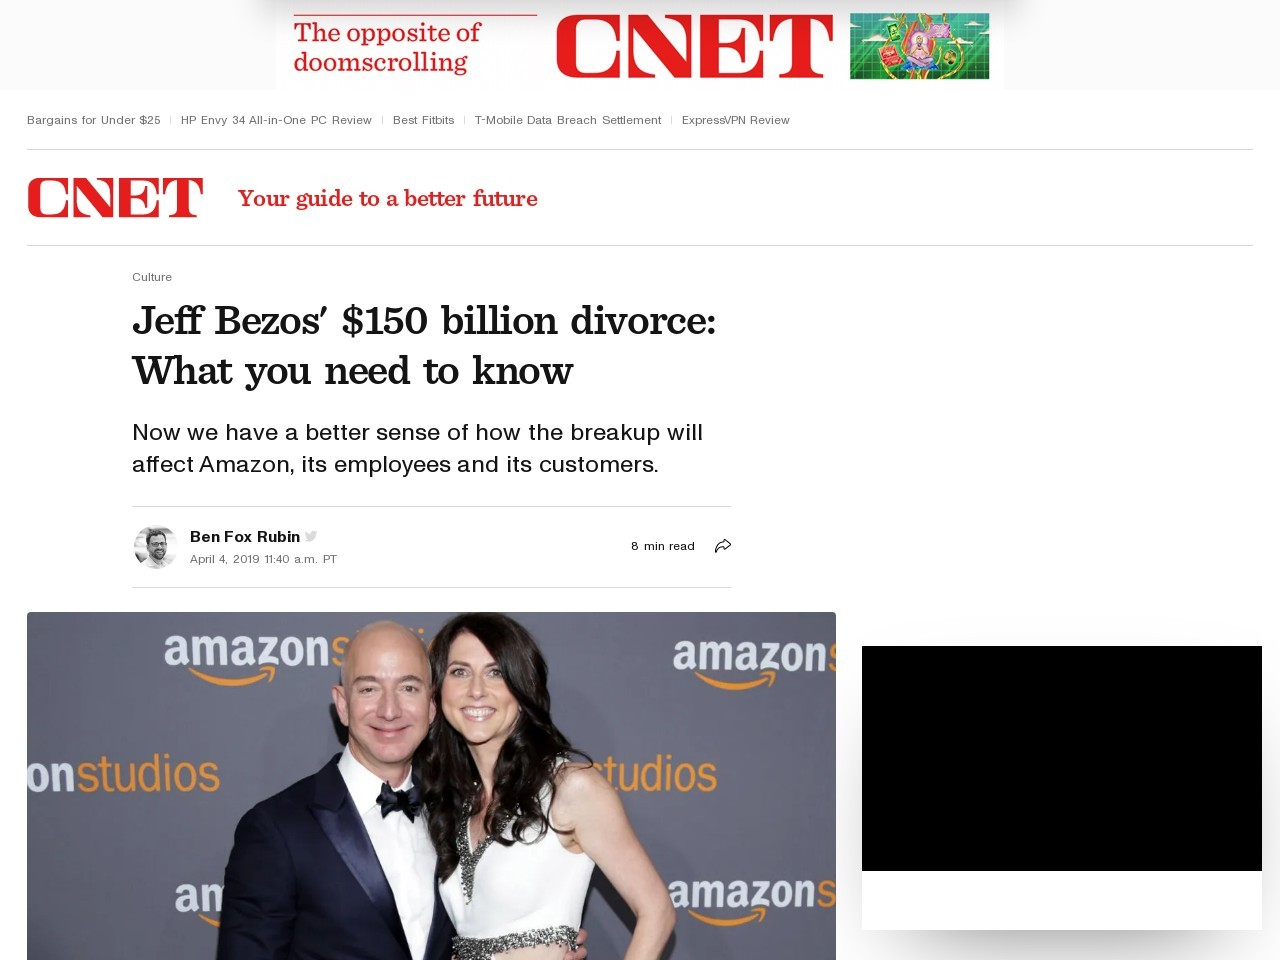 Amazon CEO Jeff Bezos' $140B divorce: What you need to know     – CNET